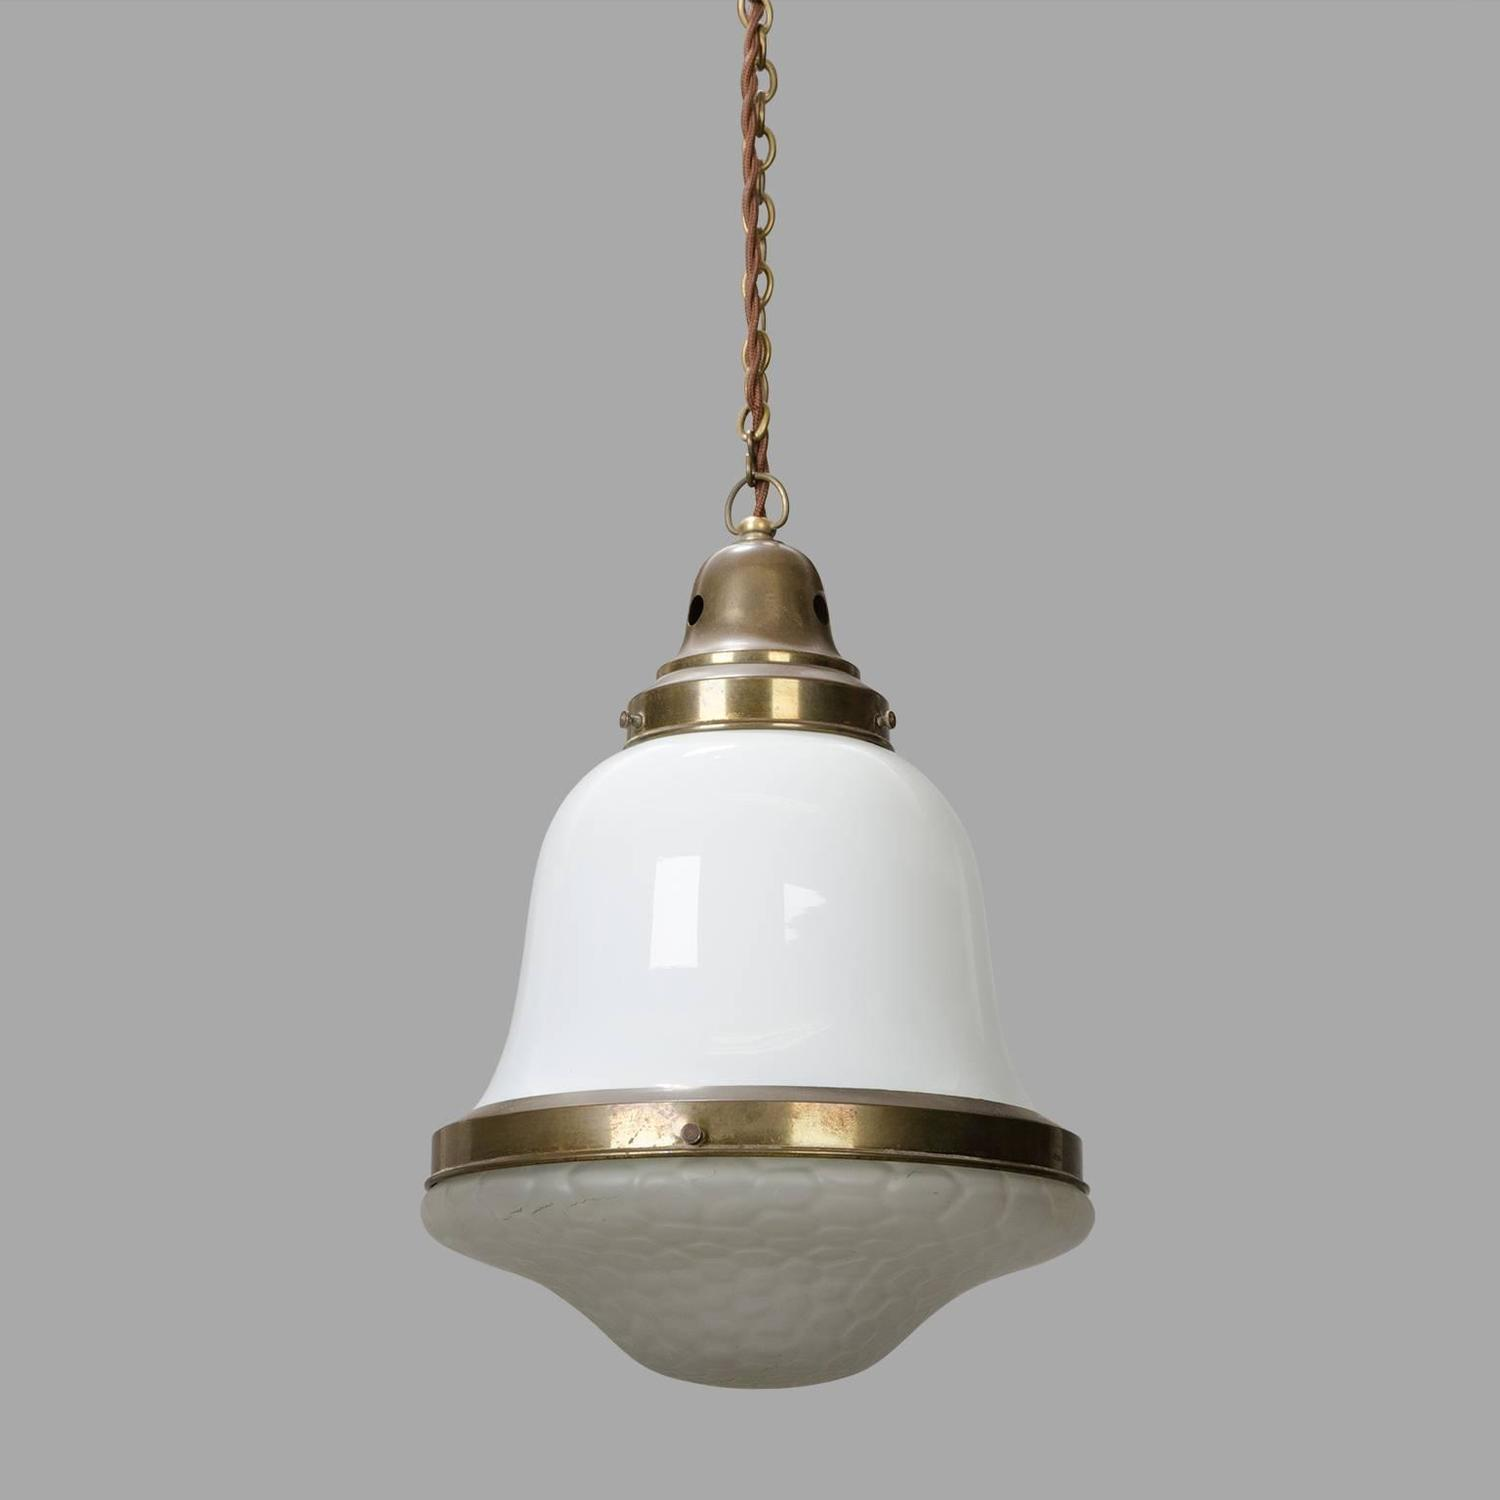 Small Pendant light in Brass and Glass circa 1930 at 1stdibs